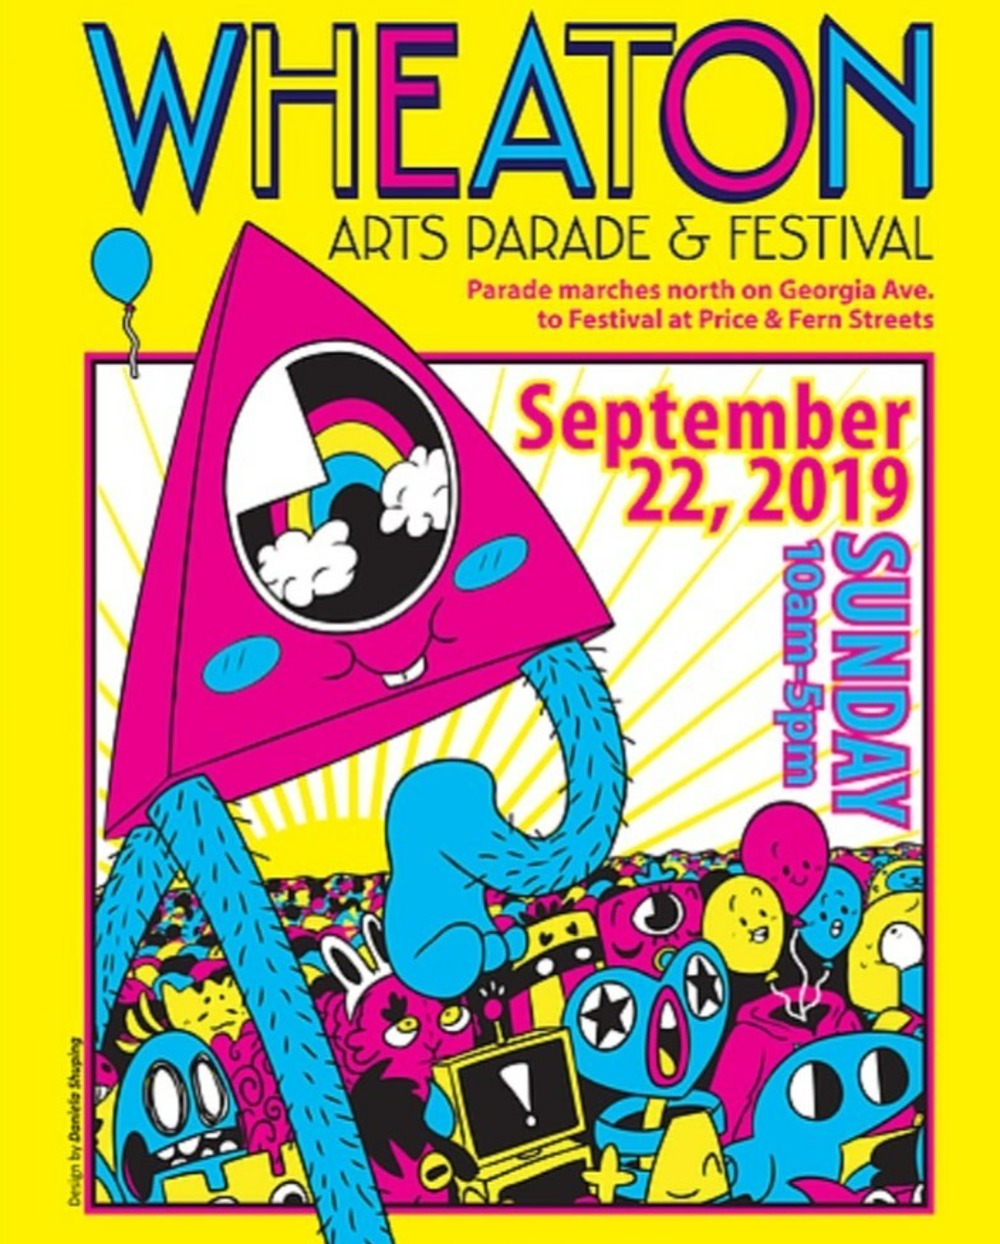 Wheaton Arts Parade and Festival is this Sunday, September 22, 2019.